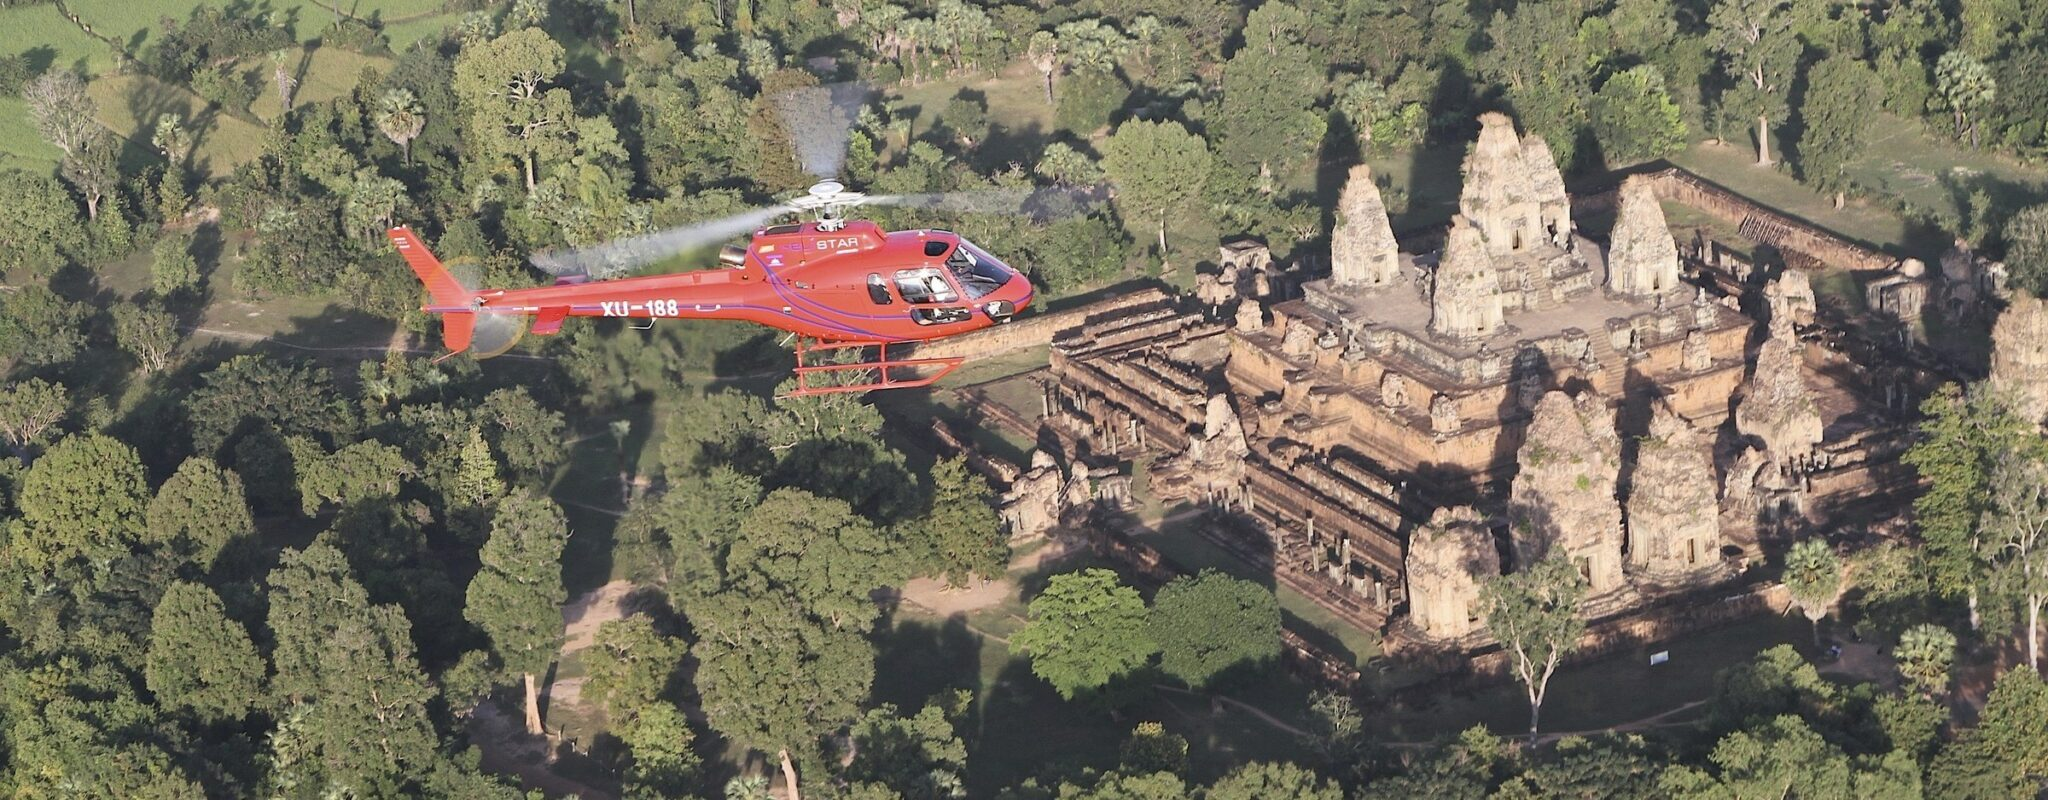 Helicopter over Angkor, Cambodia